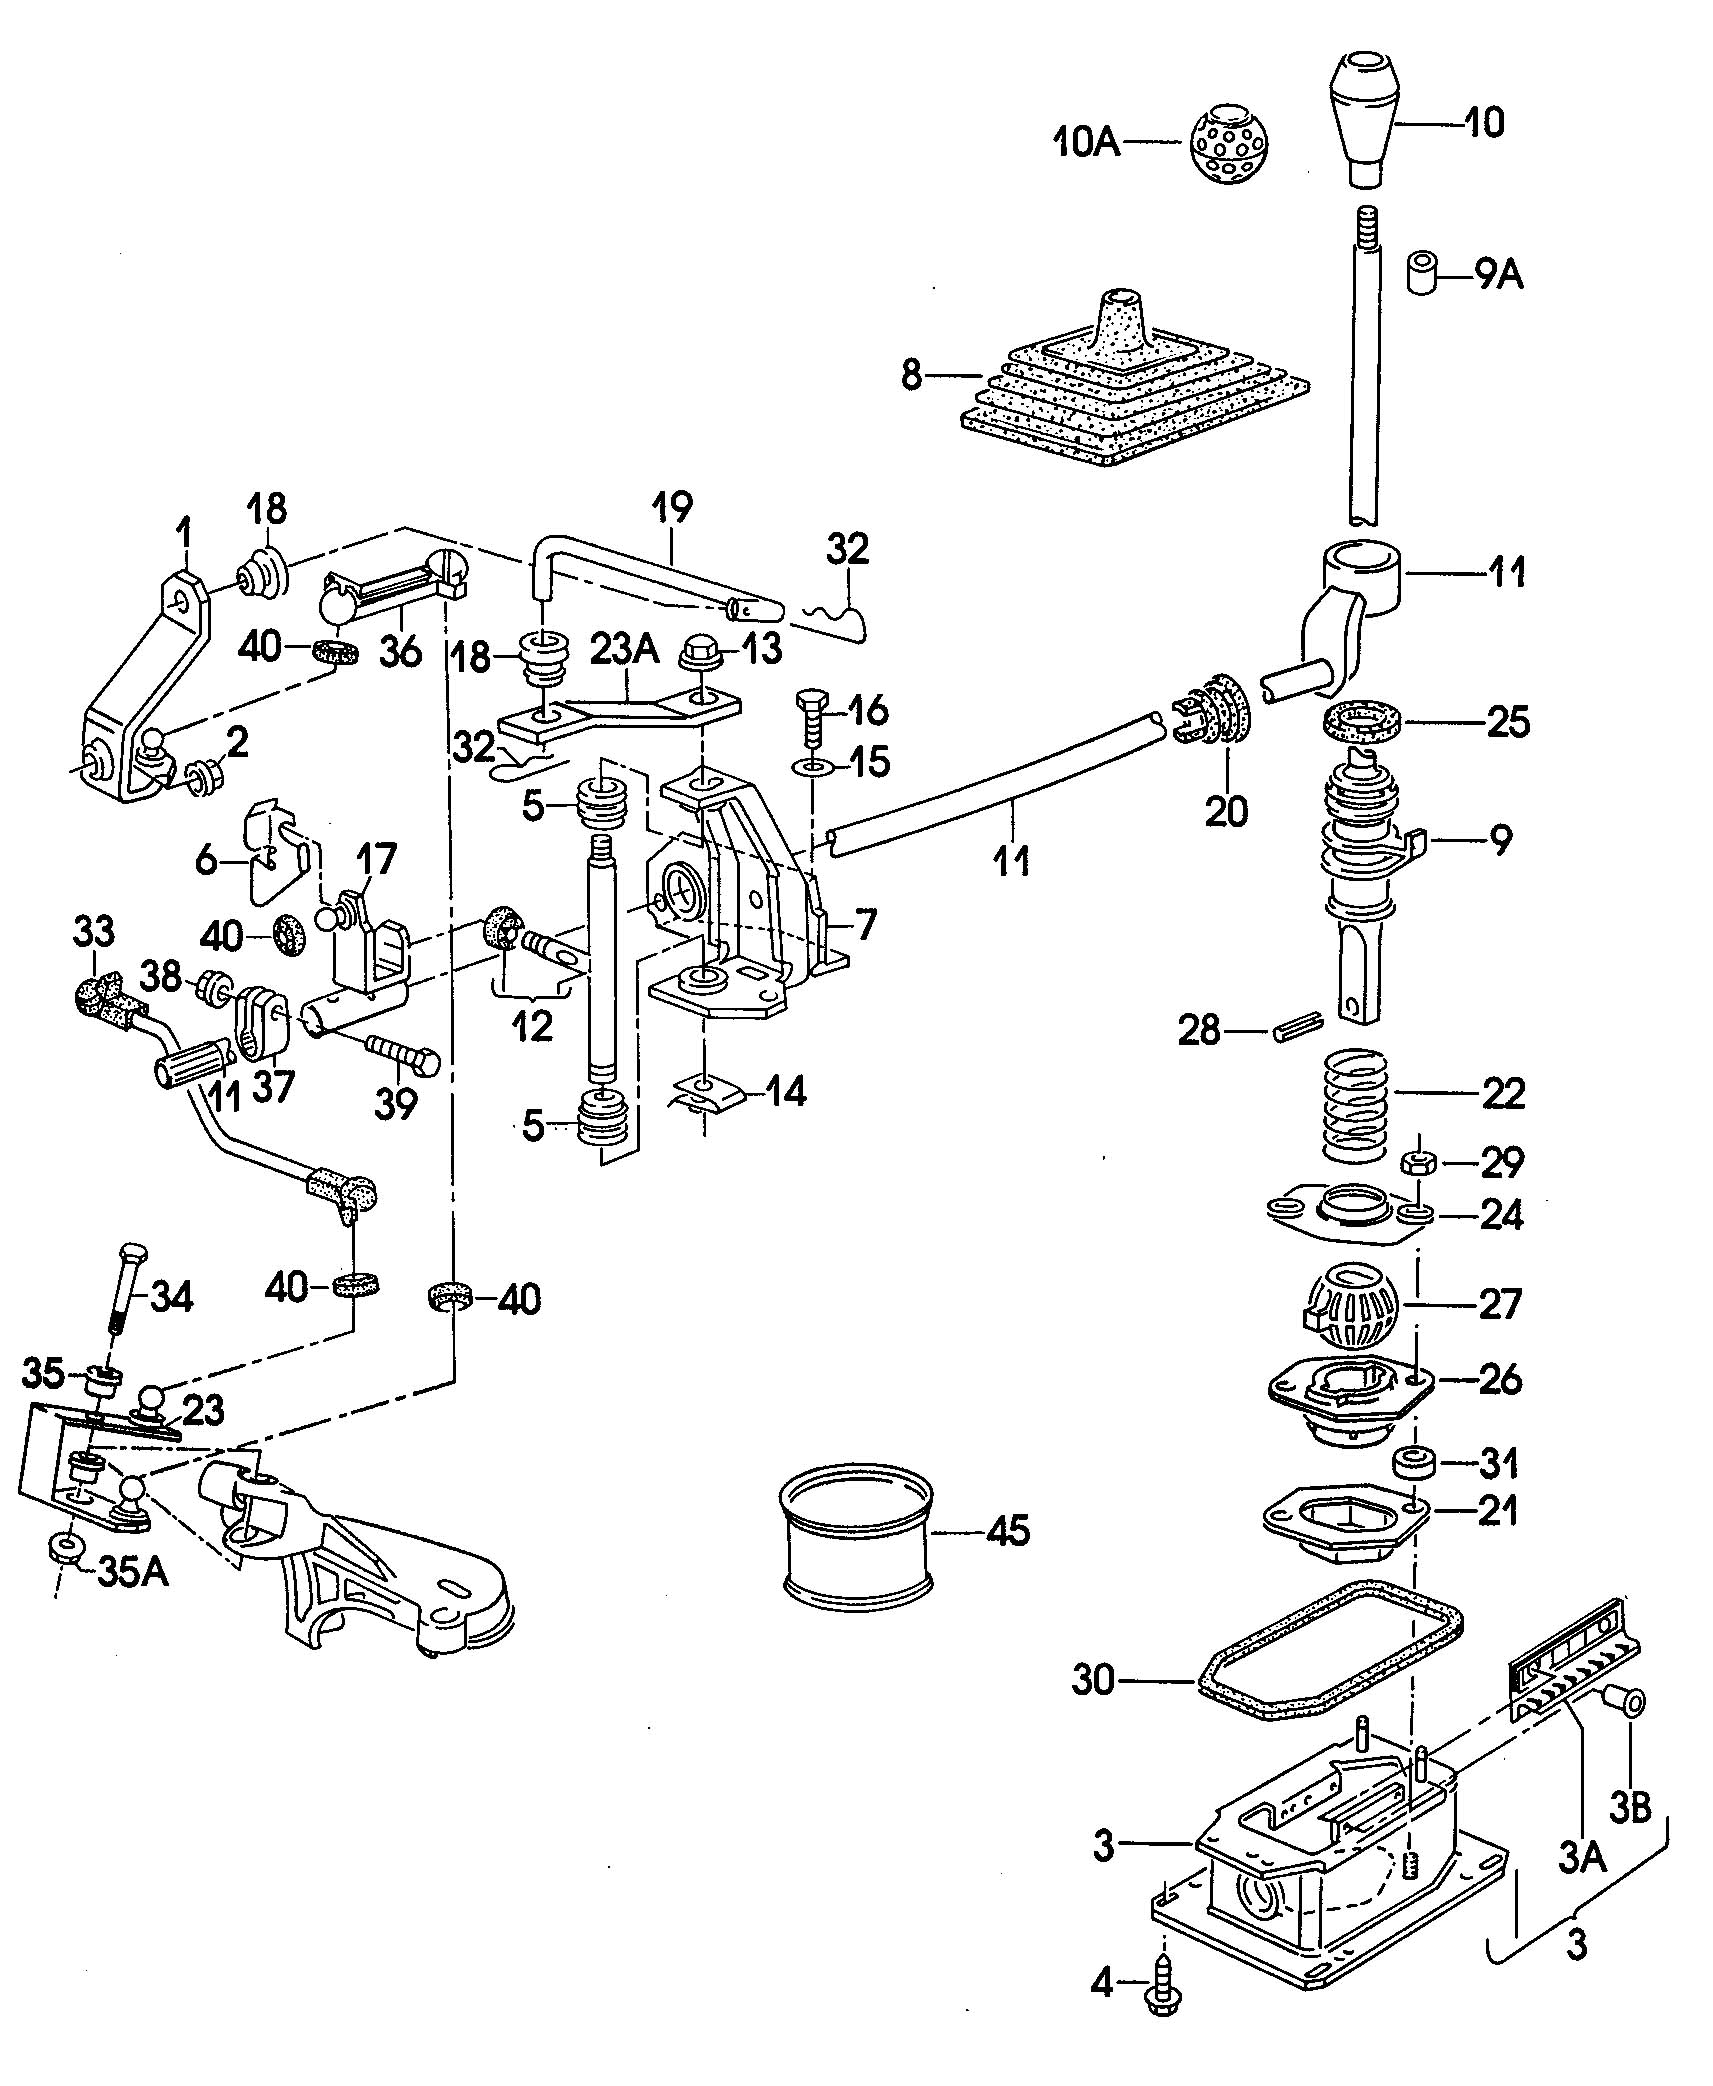 Volkswagen Shift mechanism for manual transmission engine